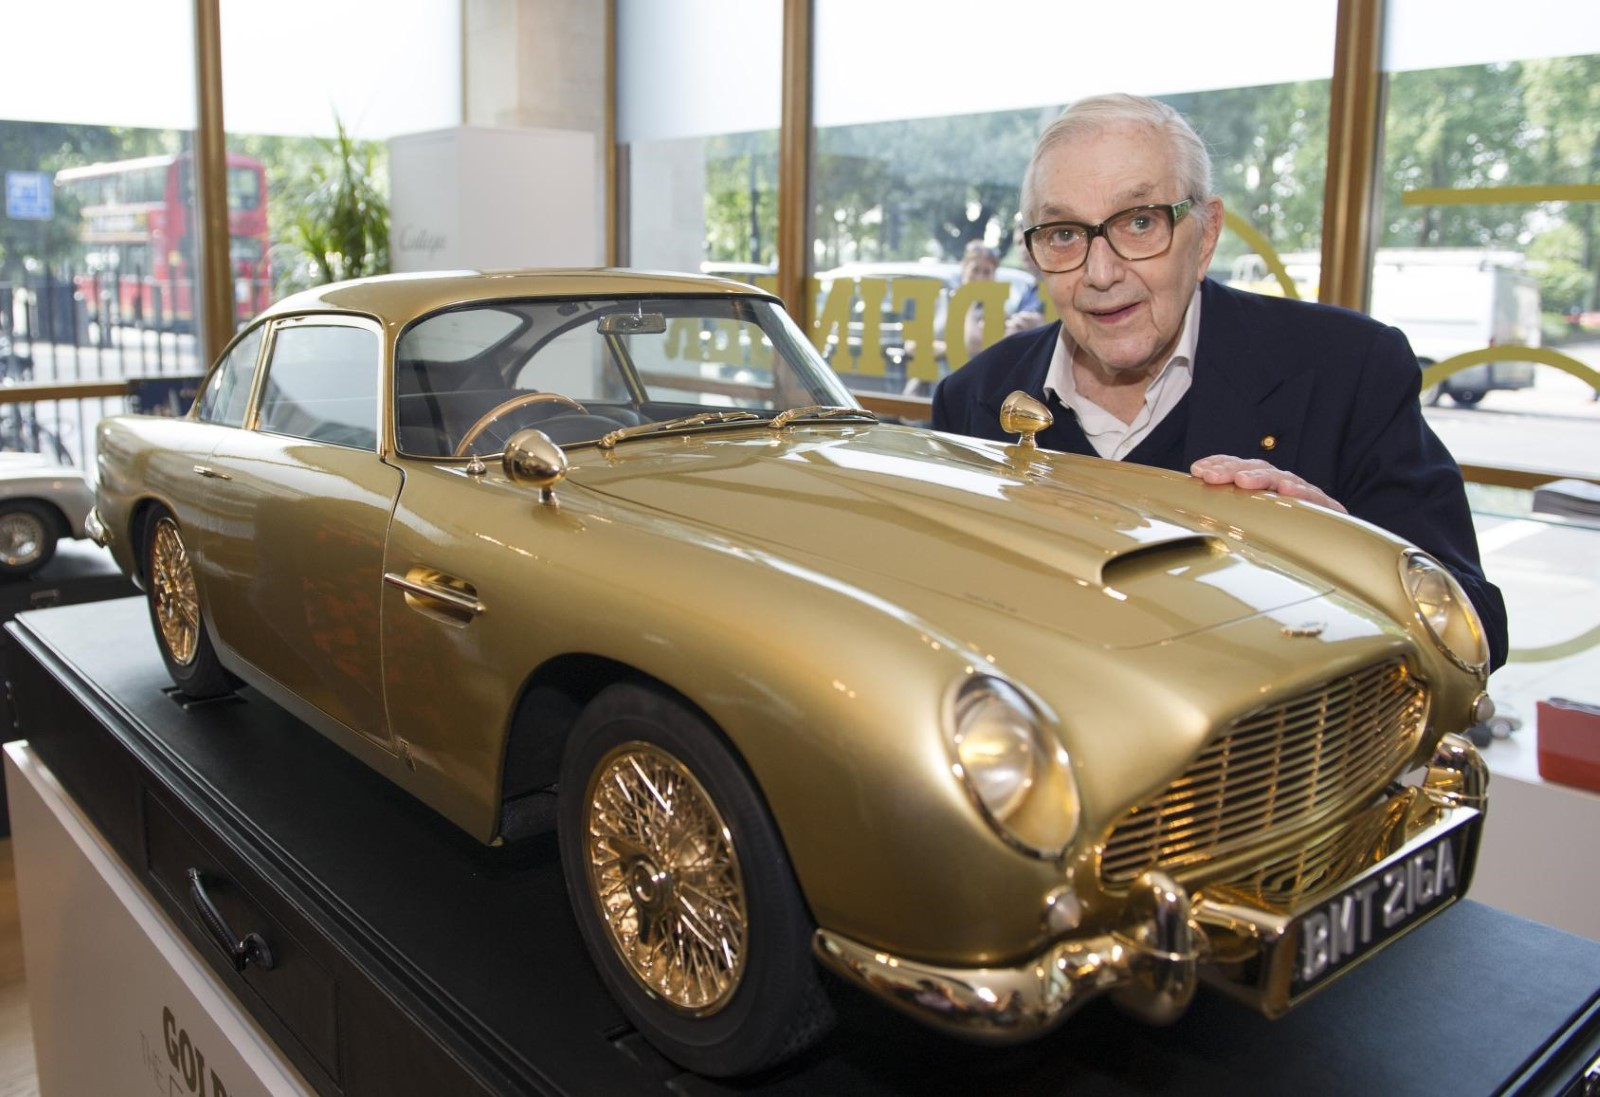 Acura Mdx 2017 >> Gold-Plated Aston Martin DB5 Model Set For Charity Auction